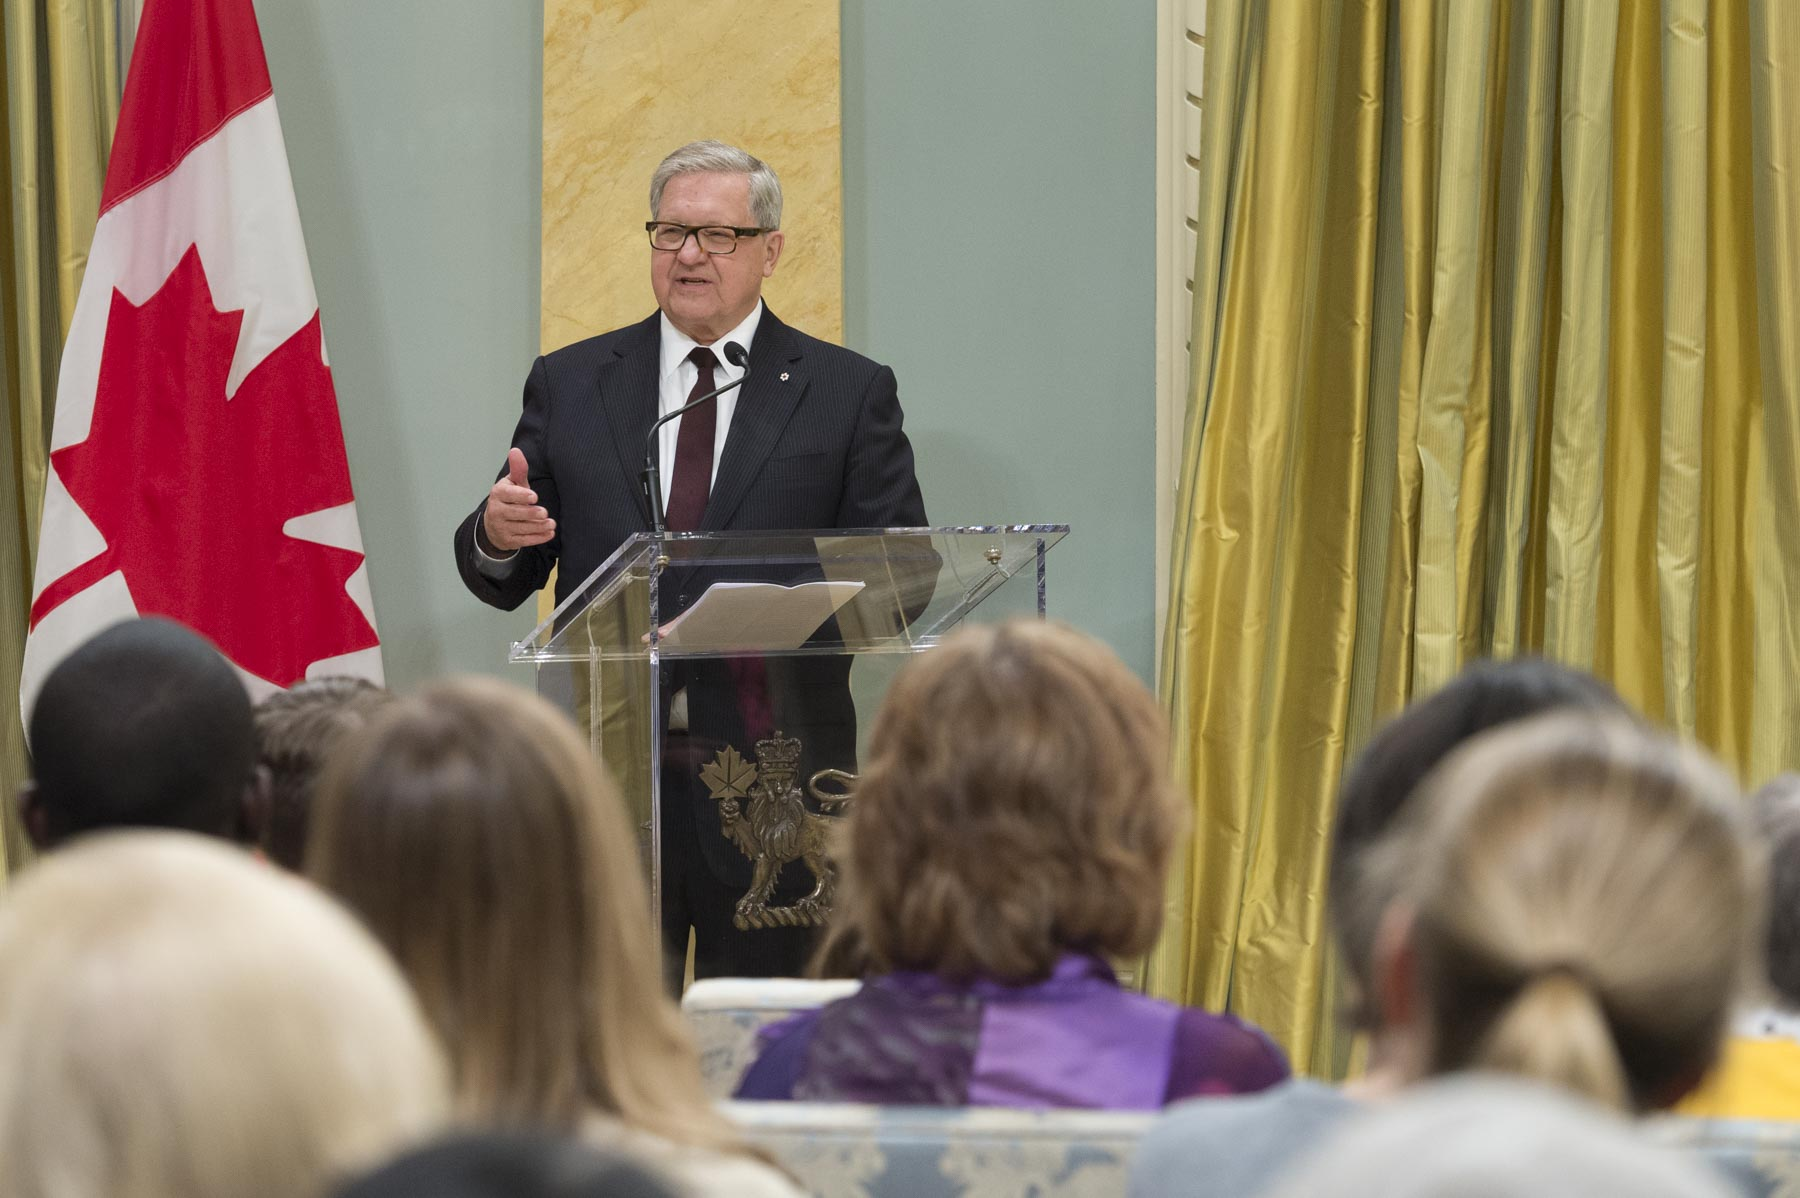 Mr. Axworthy delivered remarks thanking UNA-Canada for this award.